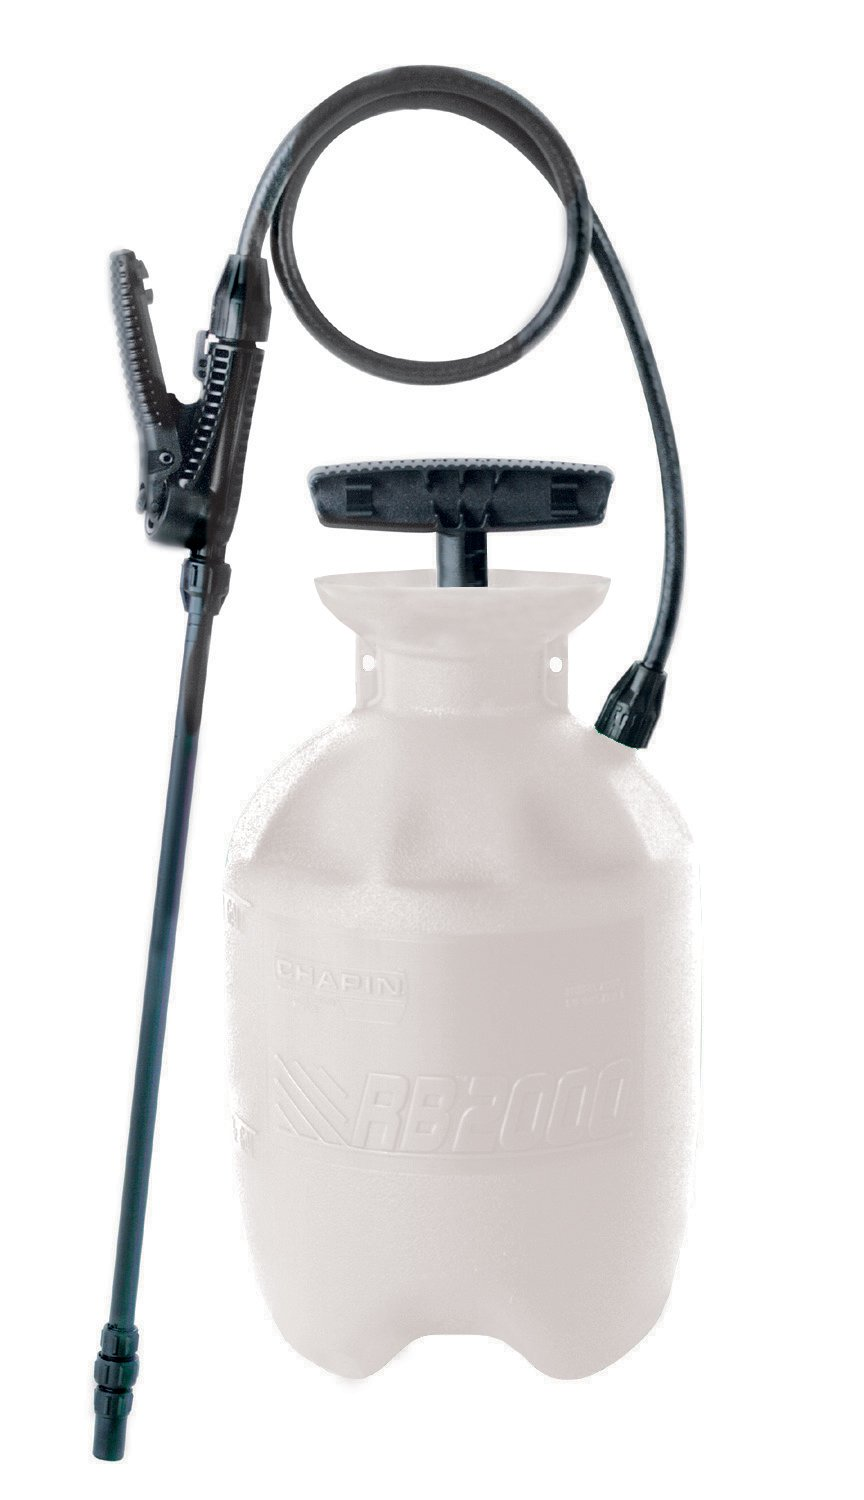 Chapin International 023883200107 Chapin 20010 1-Gallon SureSpray Sprayer for Fertilizer, Herbicides and, 1 gal Translucent